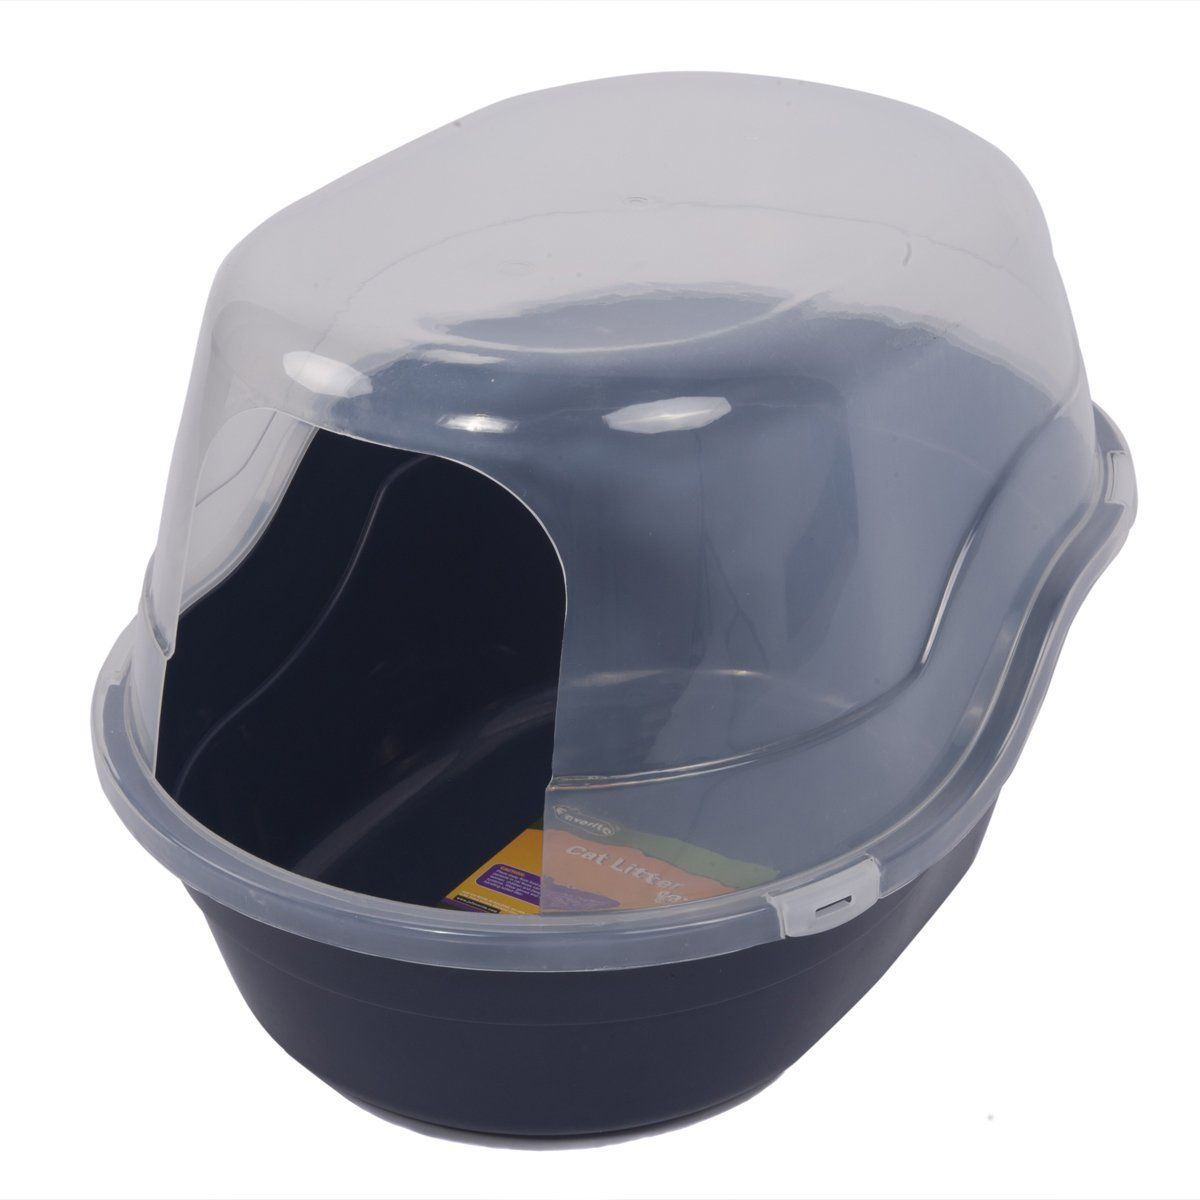 Favorite Jumbo Covered Enclosed Cat Litter Box 25 Inch Extra Large Additional Details At The Pin Image Click It